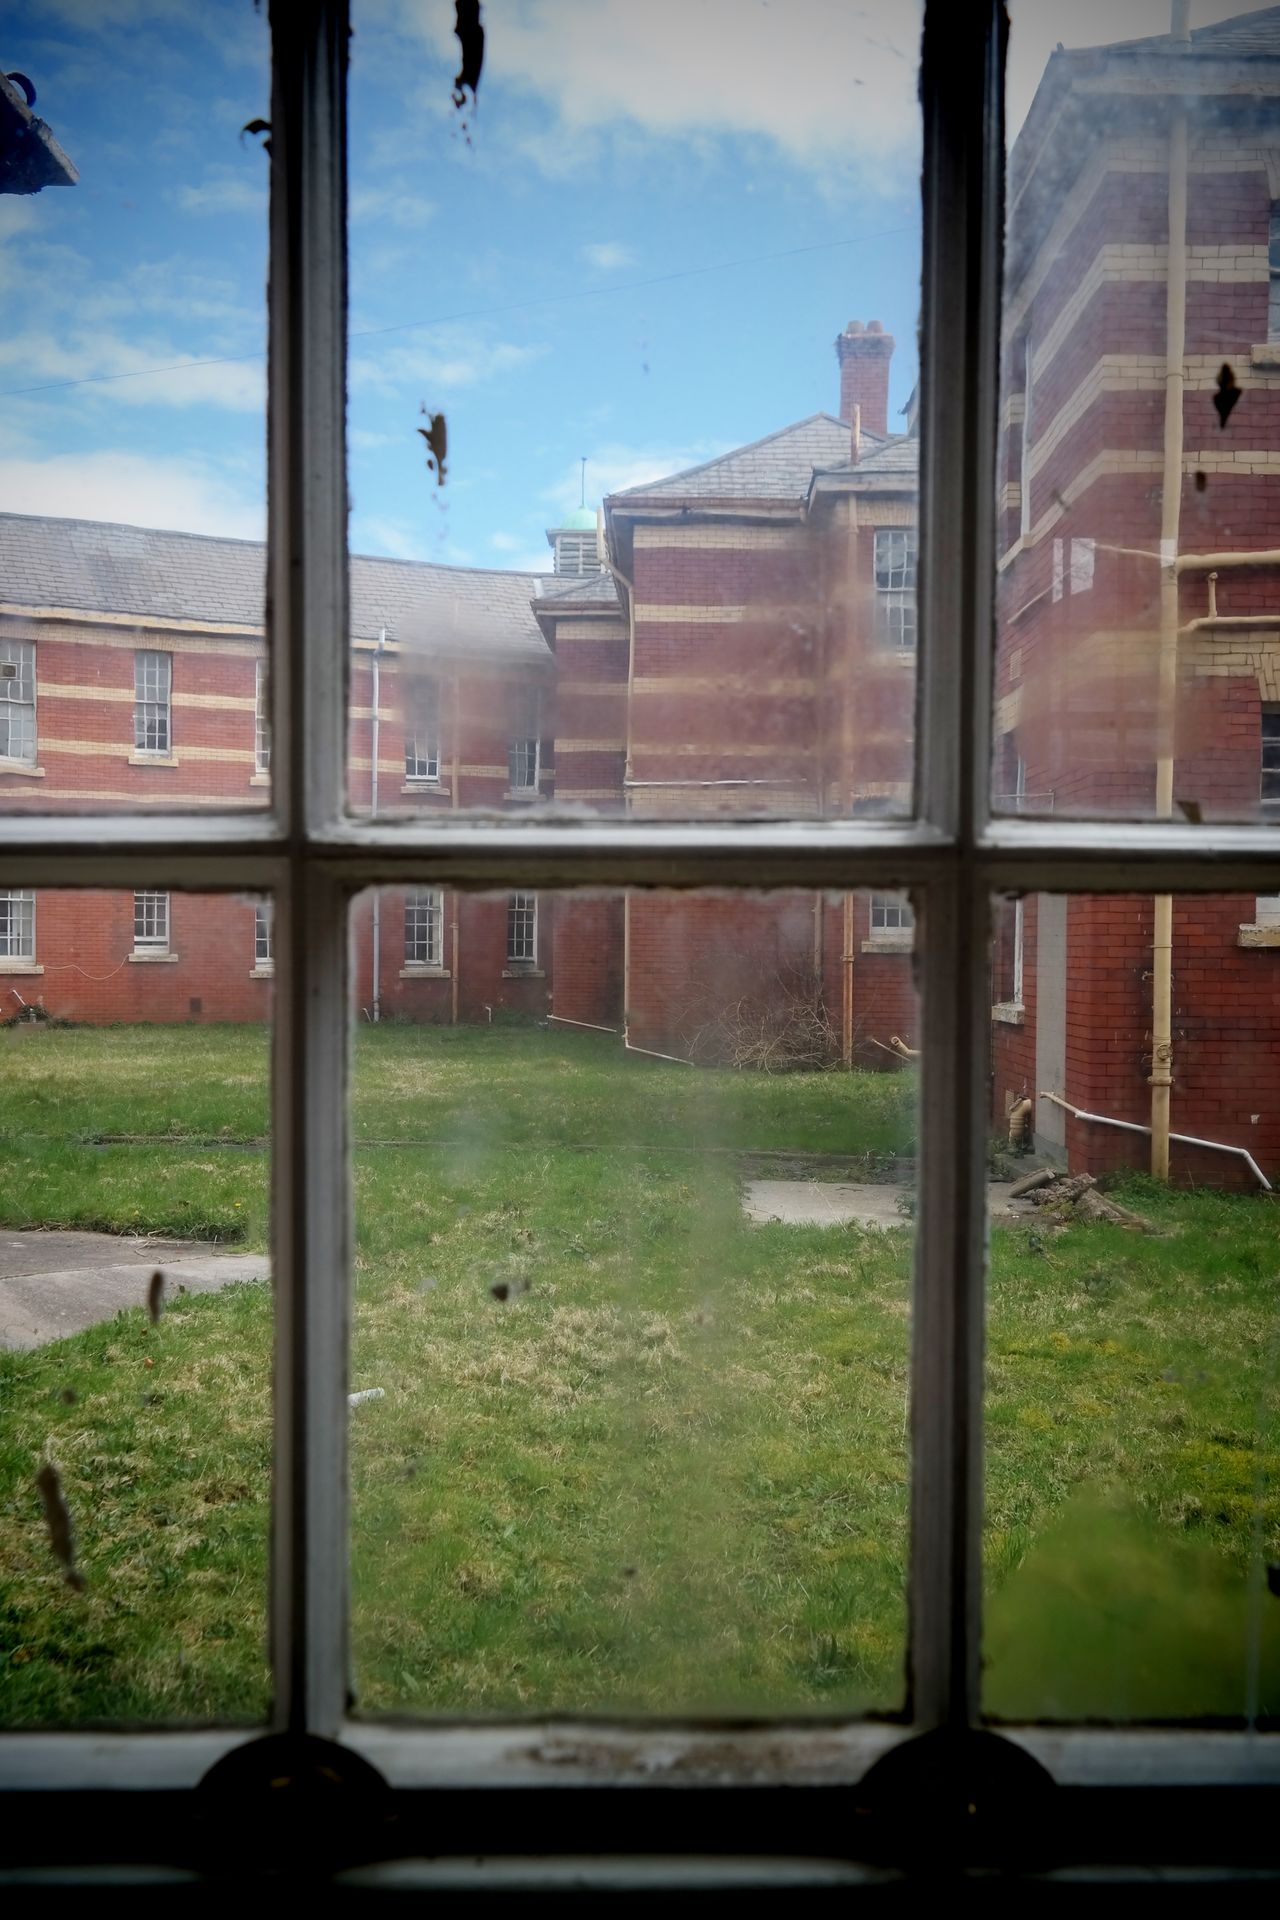 Through the window Architecture Dirty Window Exhibition Grass Hospital No People Outdoors Sky Whitchurch Hospital Window